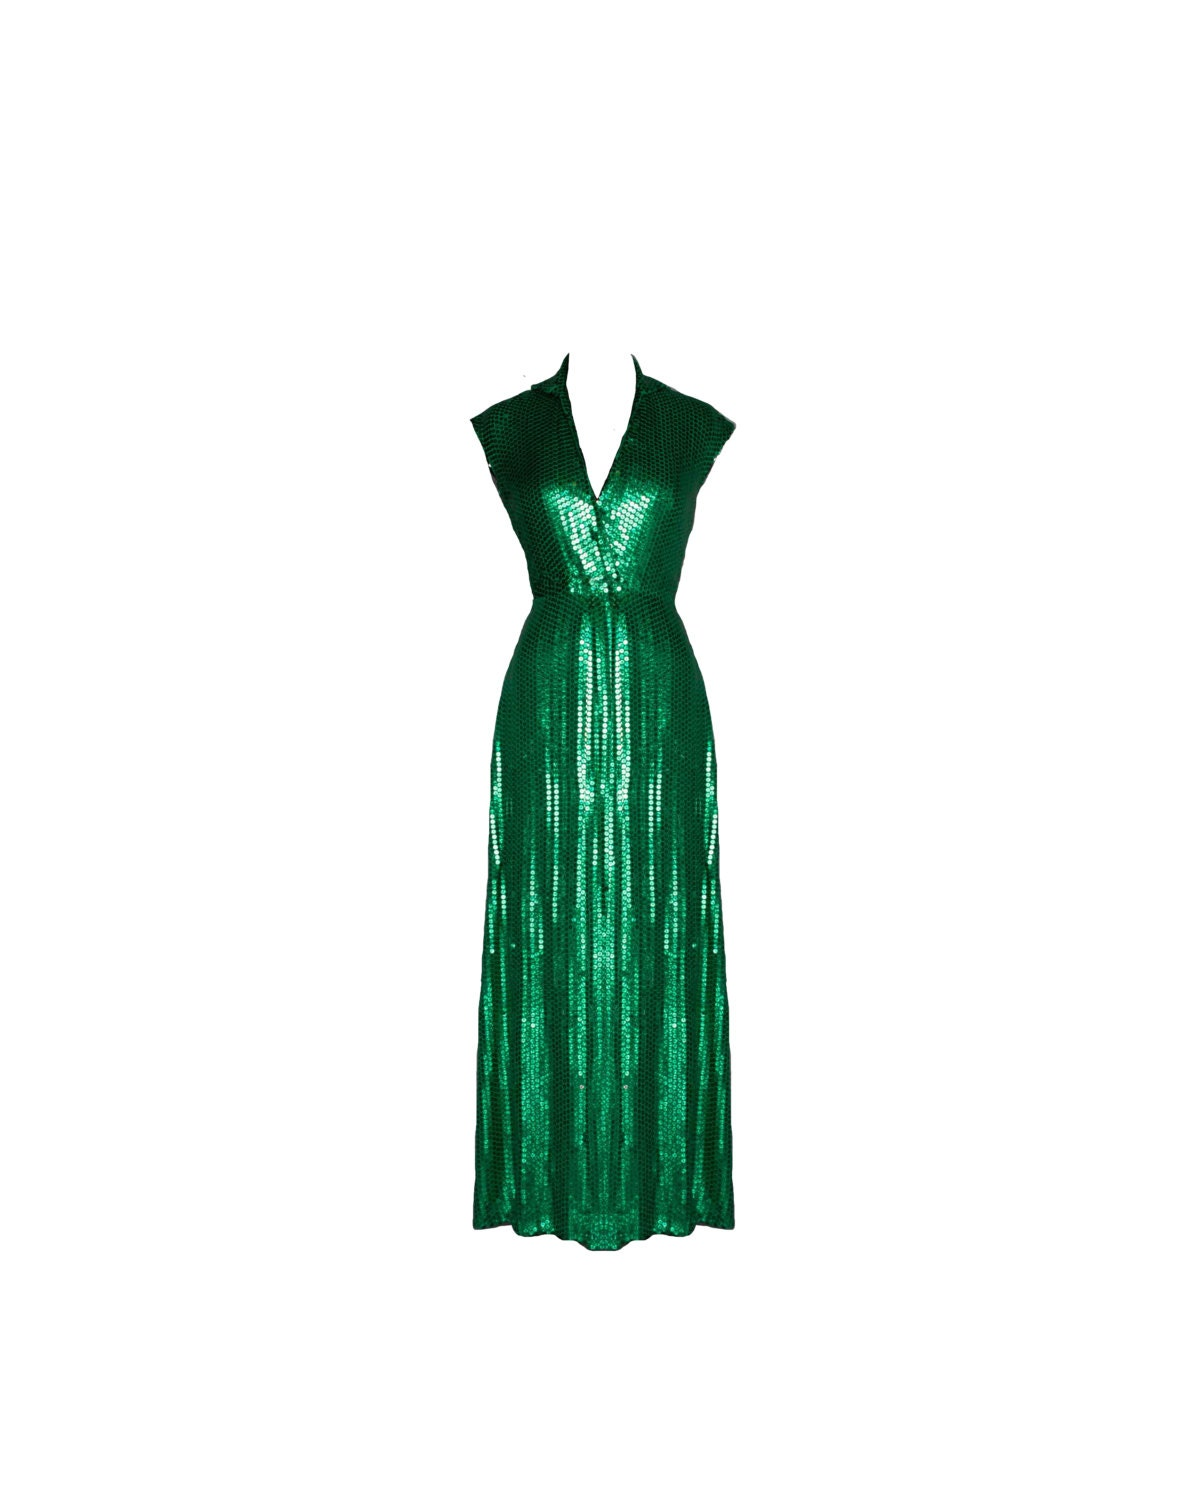 Vintage Halston Emerald Green Collared Sequin Evening Gown   Etsy